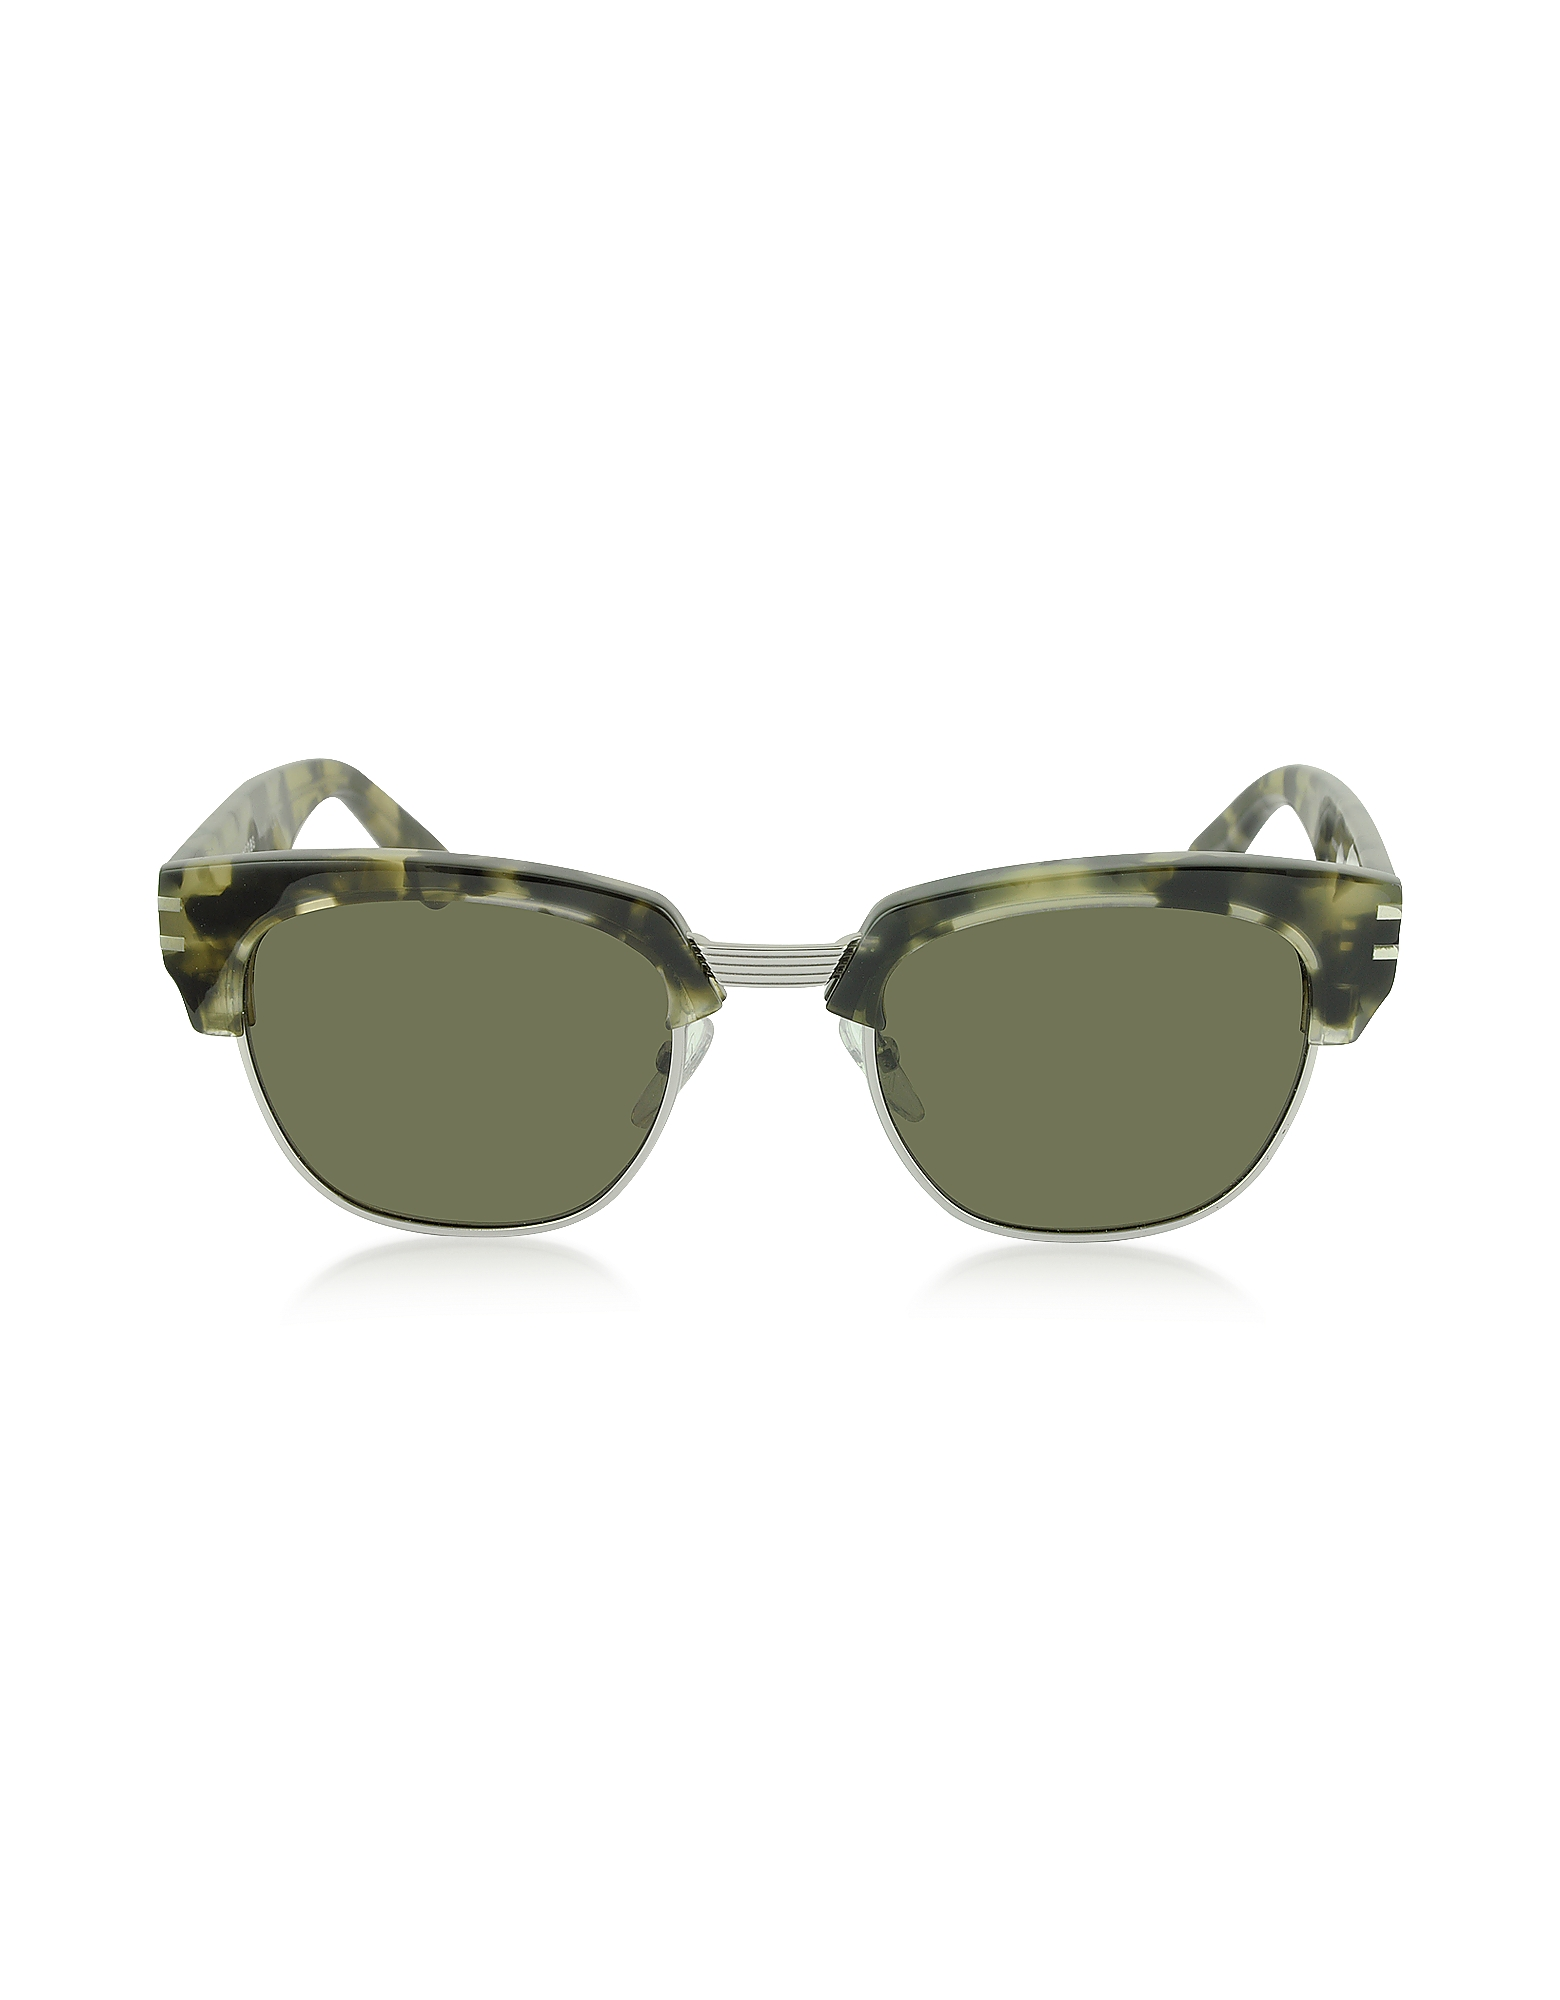 Marc Jacobs Sunglasses, MJ 590/S Classic Browline Acetate Women's Sunglasses